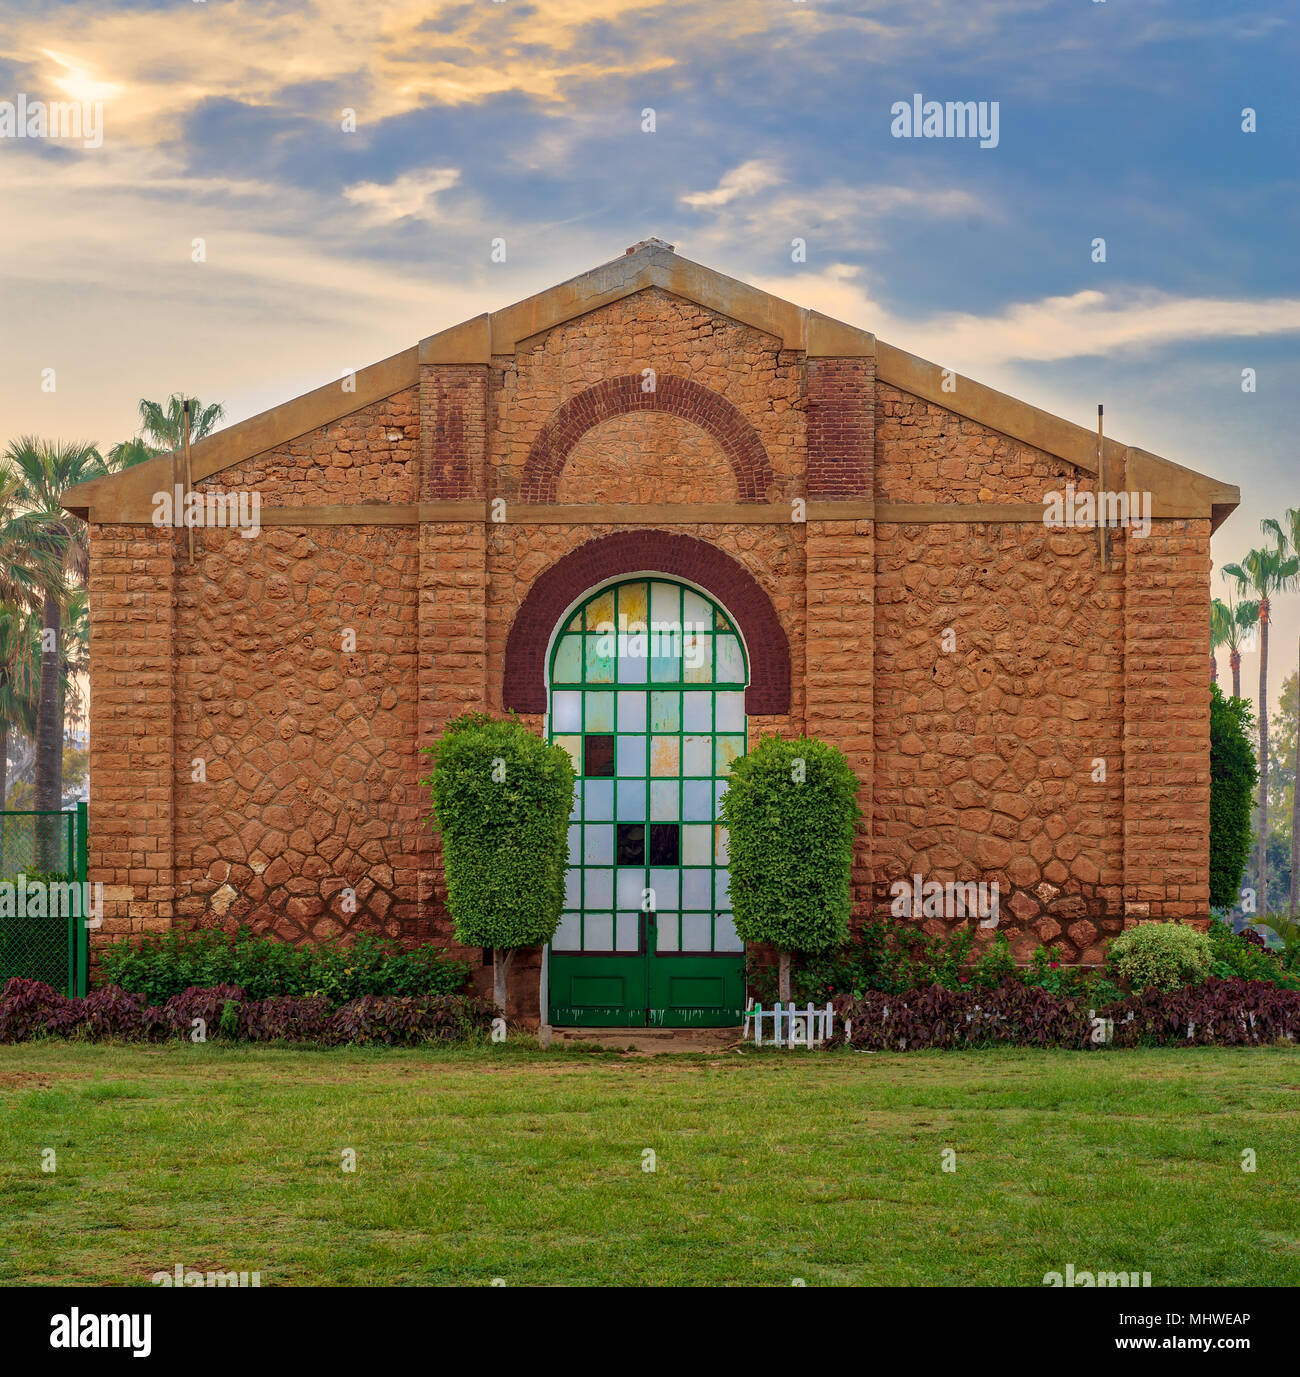 Side view of the Royal Plant Nursery with closed grunge door and orange painted bricks stone wall decorated with plants in sunrise time at Montaza pub - Stock Image